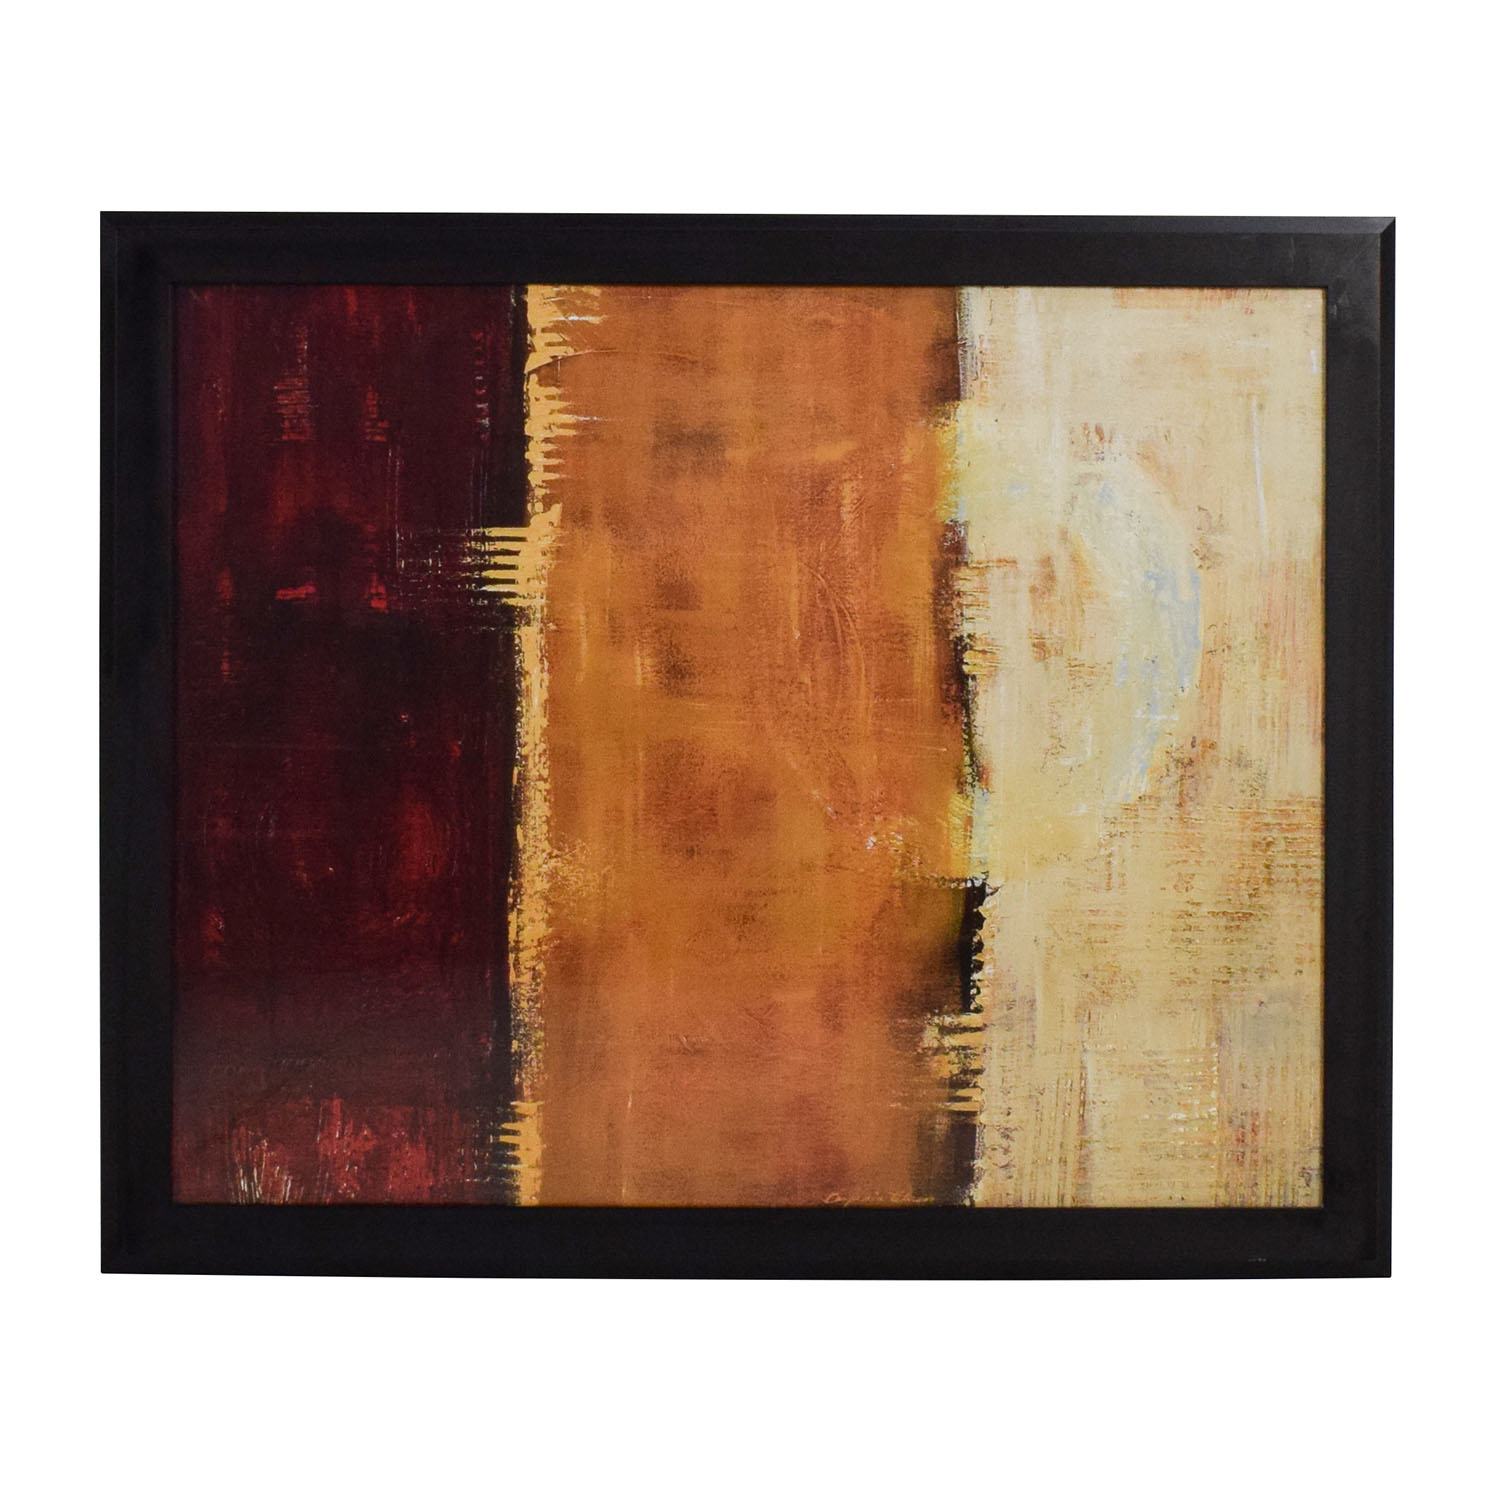 88% OFF , Z Gallerie Z Gallerie Framed Canvas Red Orange Yellow Wall Art /  Decor